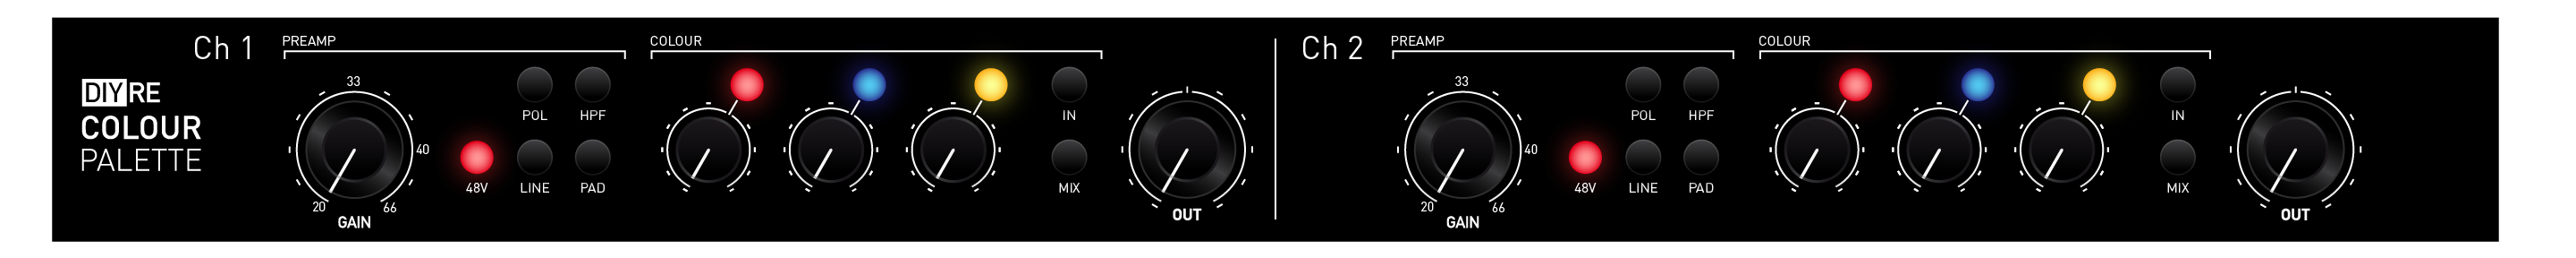 Diy Recording Equipment Blog The Central Wiring Panel Cwp Chapter 1 Rough Front Layout Click To Expand